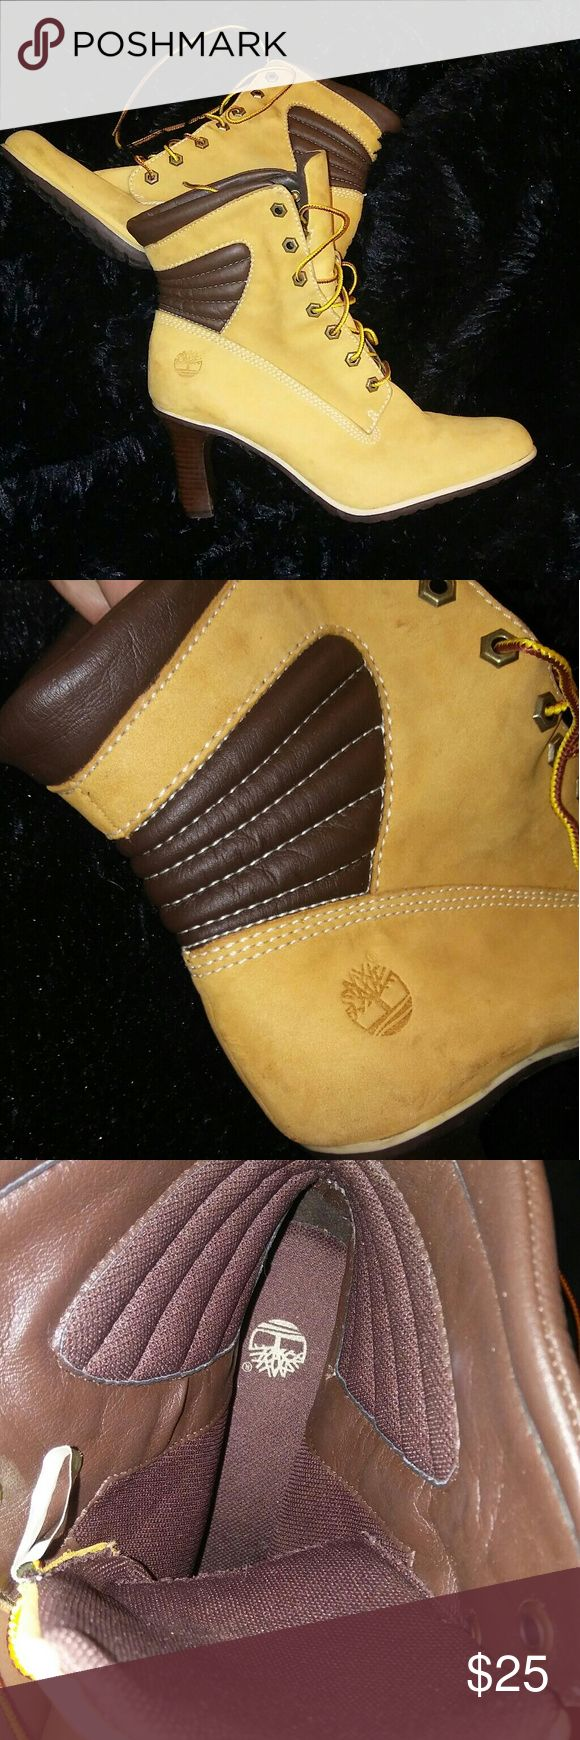 Timberland heeled boots Classic look tan and brown leather Timberland heeled boots. Used but in good condition size 10. Three inch heel makes a statement, but is still comfortable. They pair great with jeans and jumpsuits. For the trendy gal! Timberland Shoes Ankle Boots & Booties